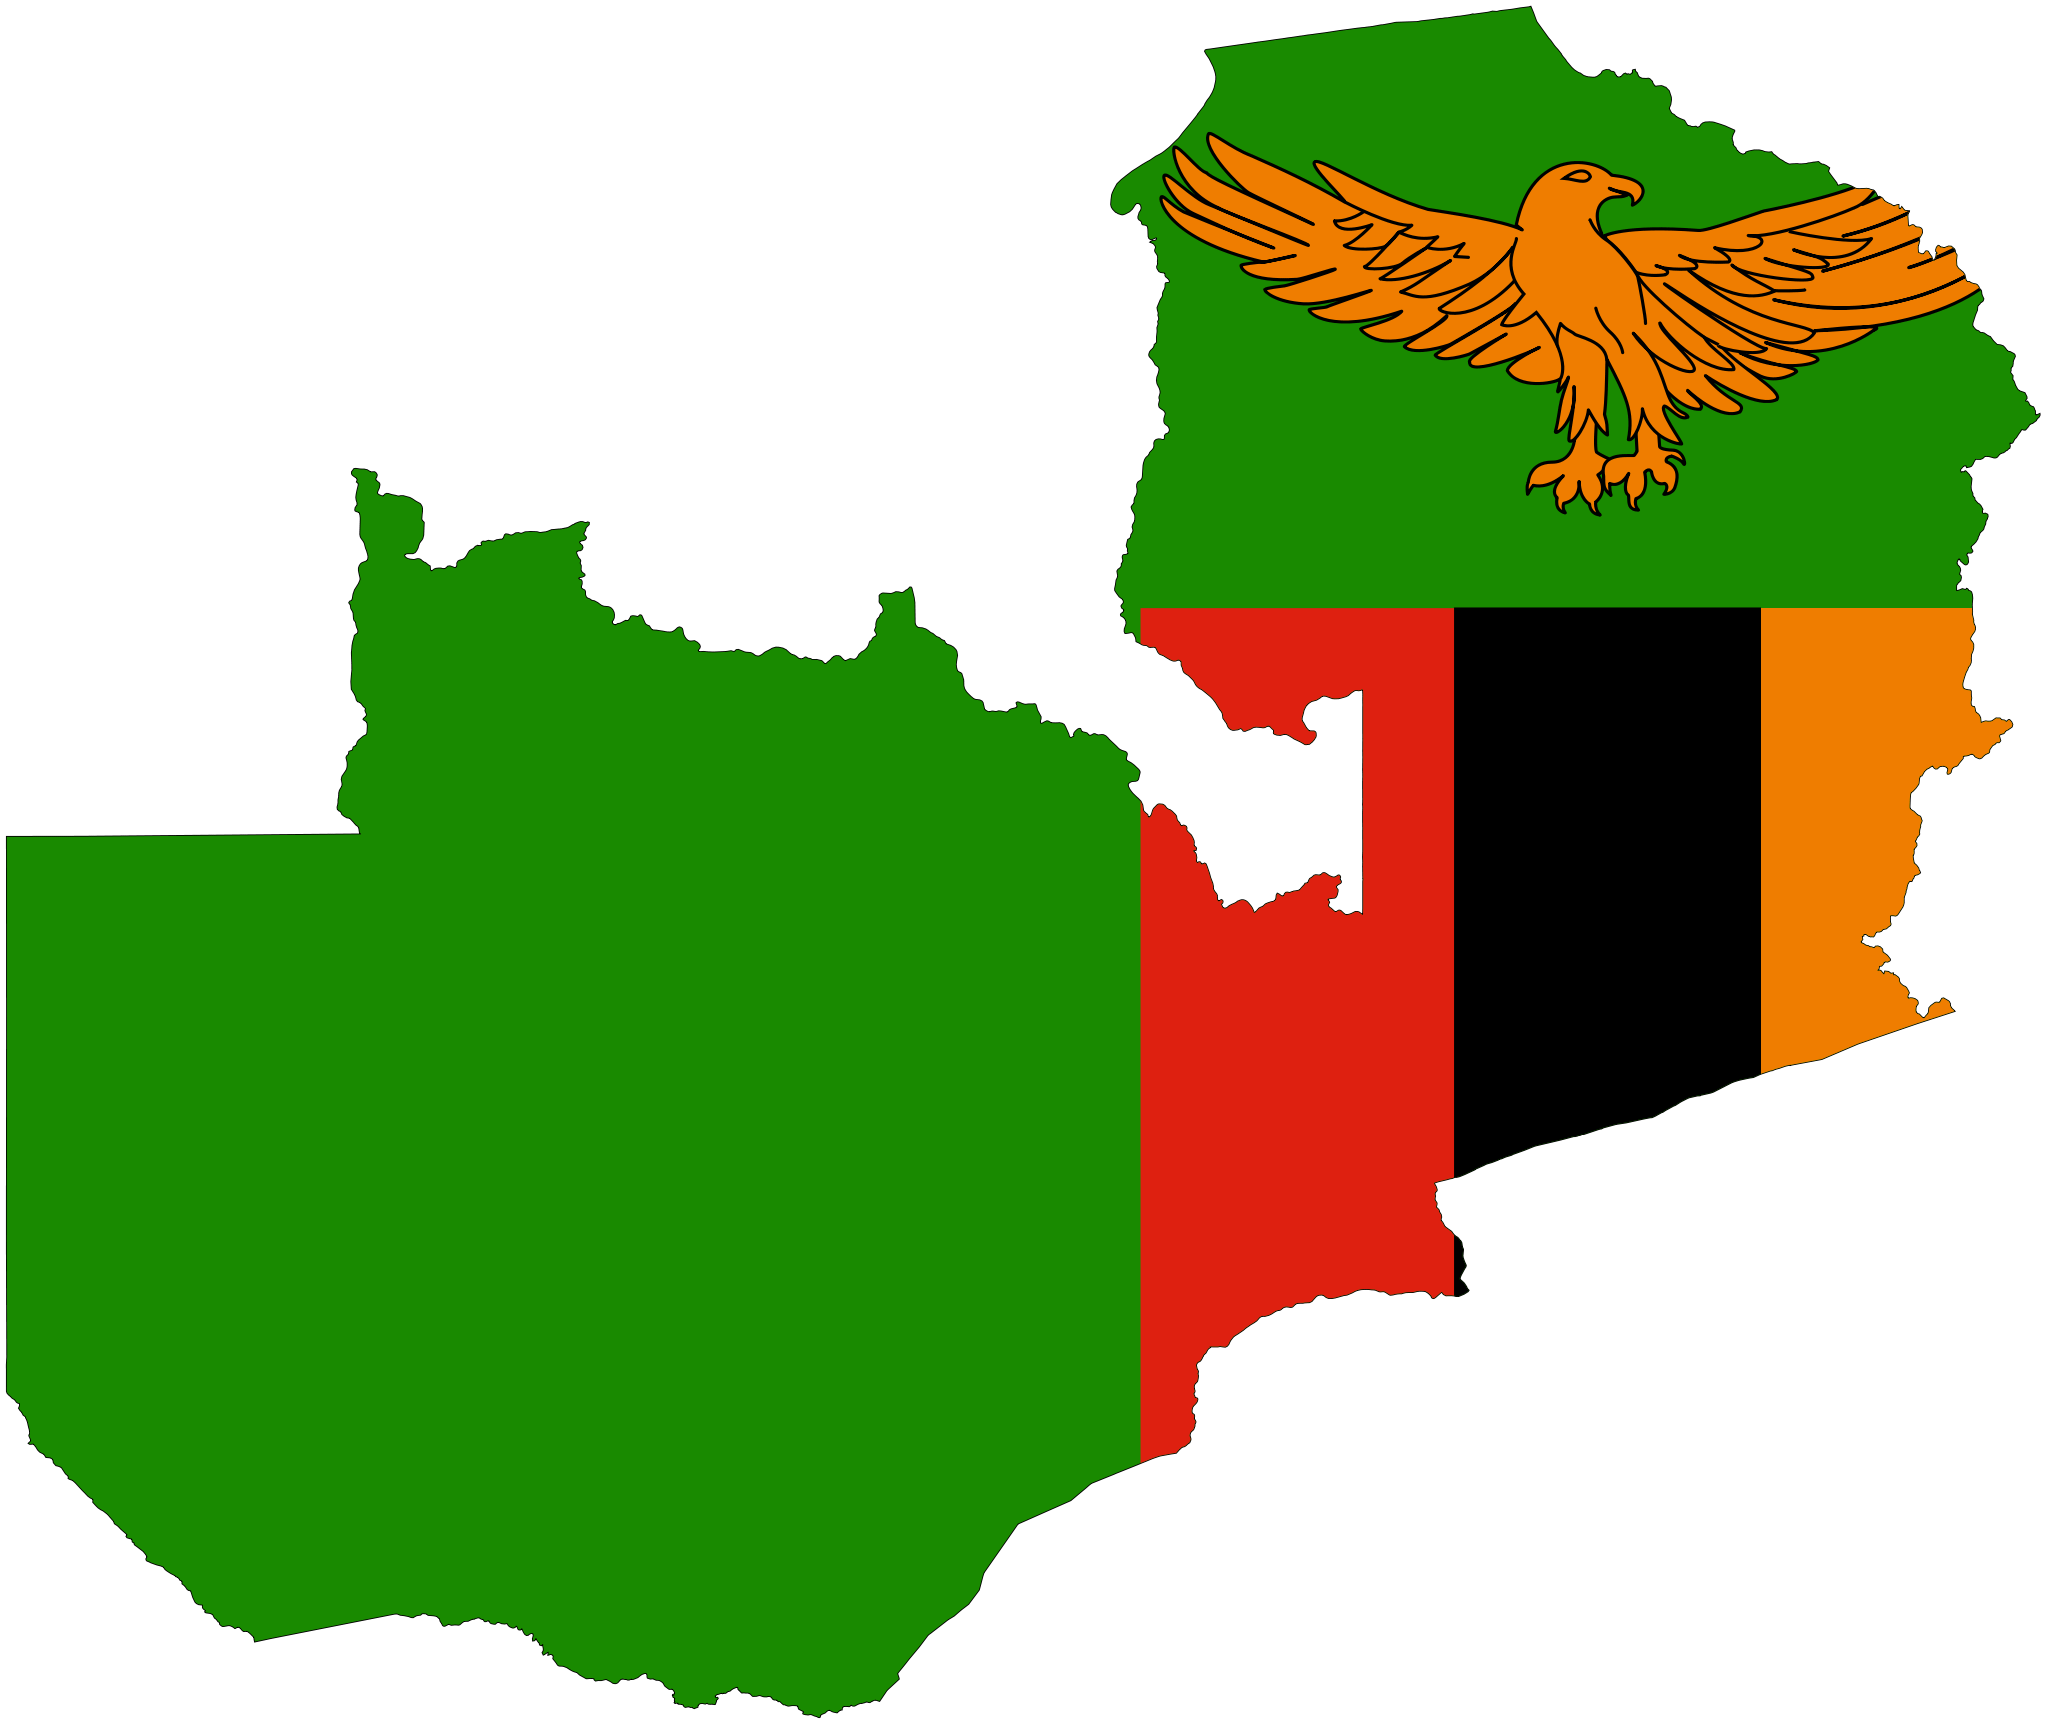 Clipart map scout map. Went to zambia things